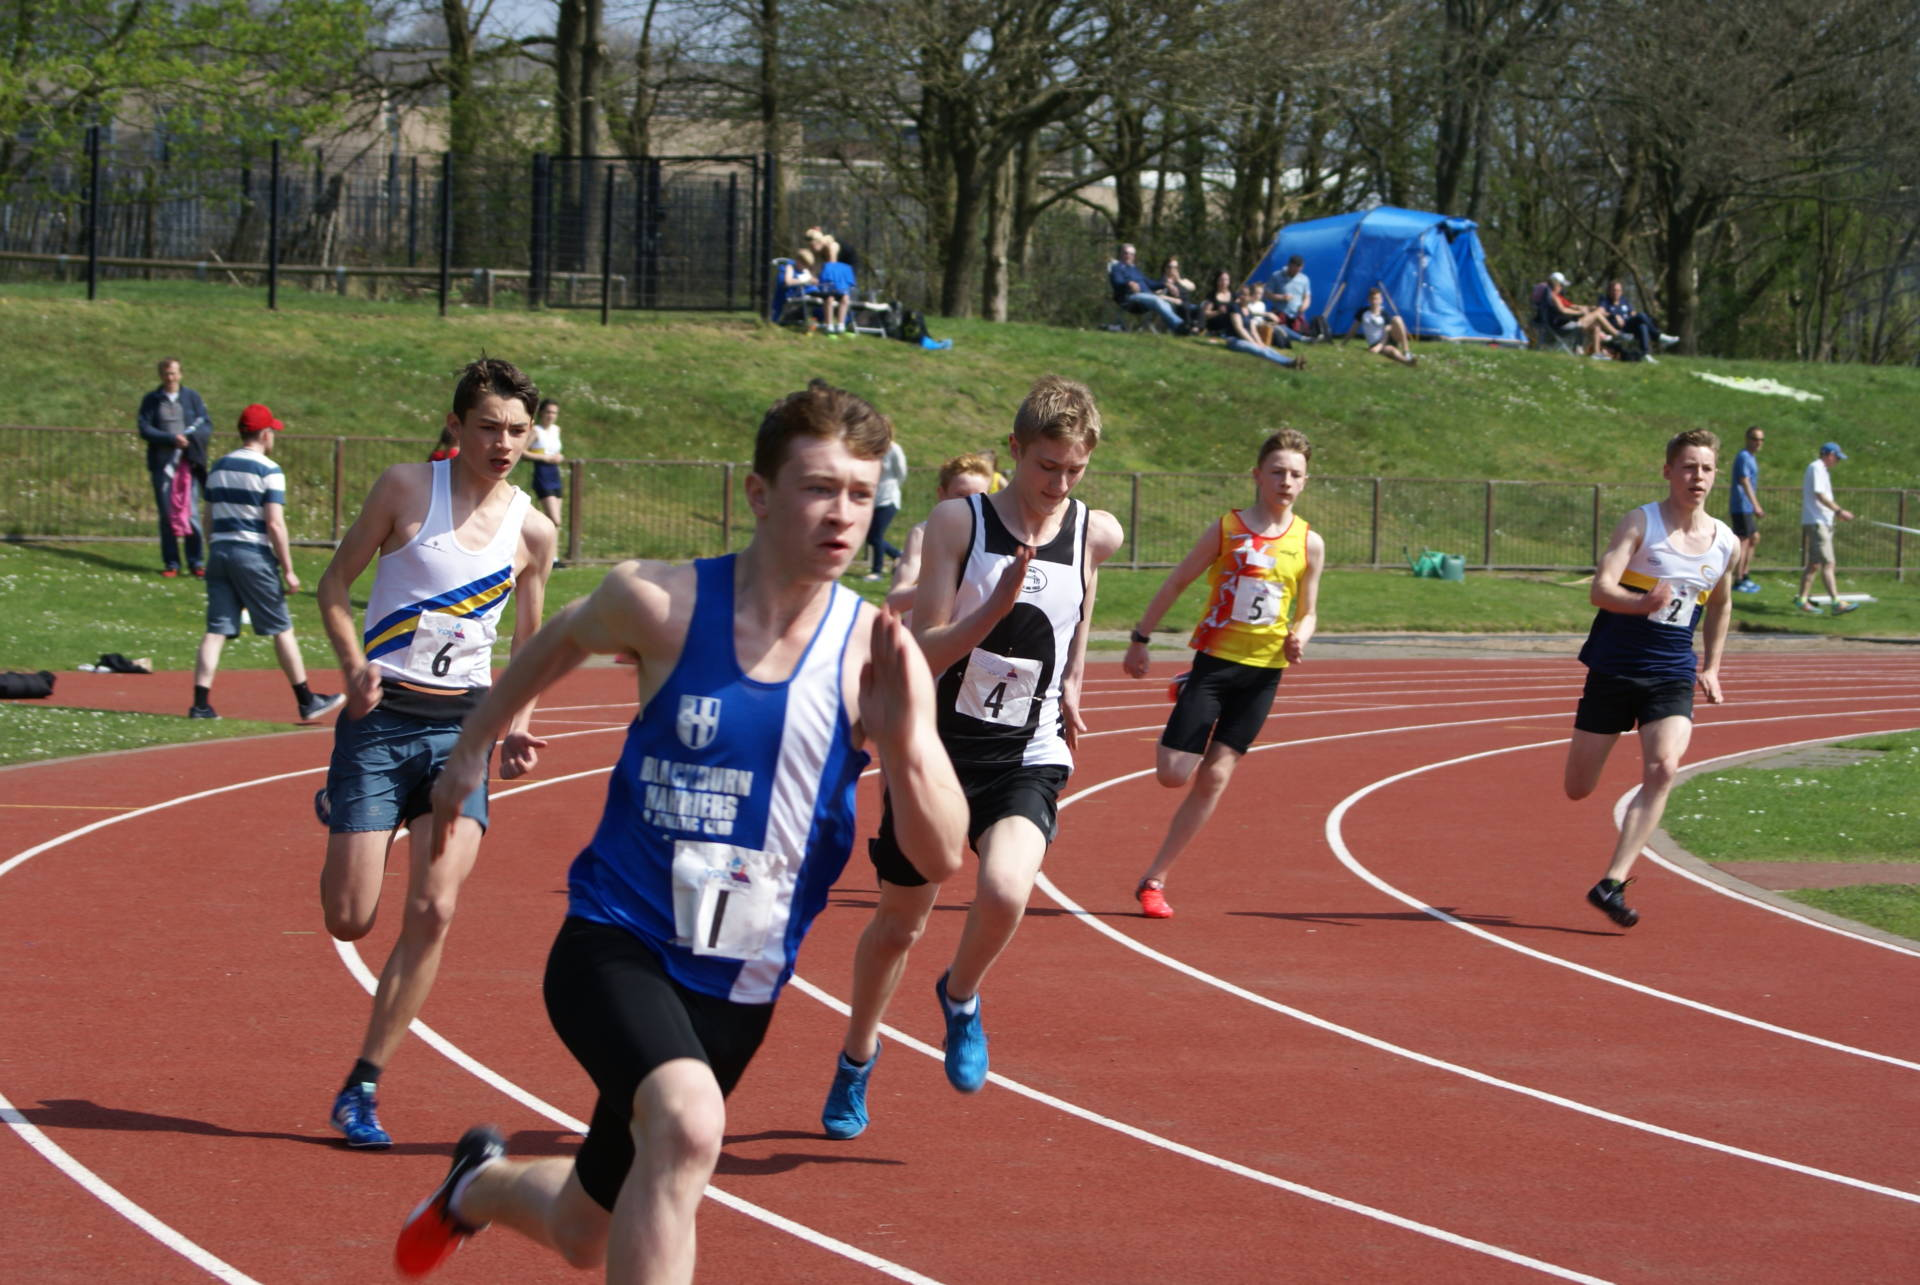 Harriers Win UKYDL Division 1 Match – 13 Harriers Run London – Matt 2nd North West Counter in Mini-Marathon – Ben 2nd at Ron Hill 10k & Pauline wins Women's Race – Jack Wins Clitheroe Triathlon – More Results